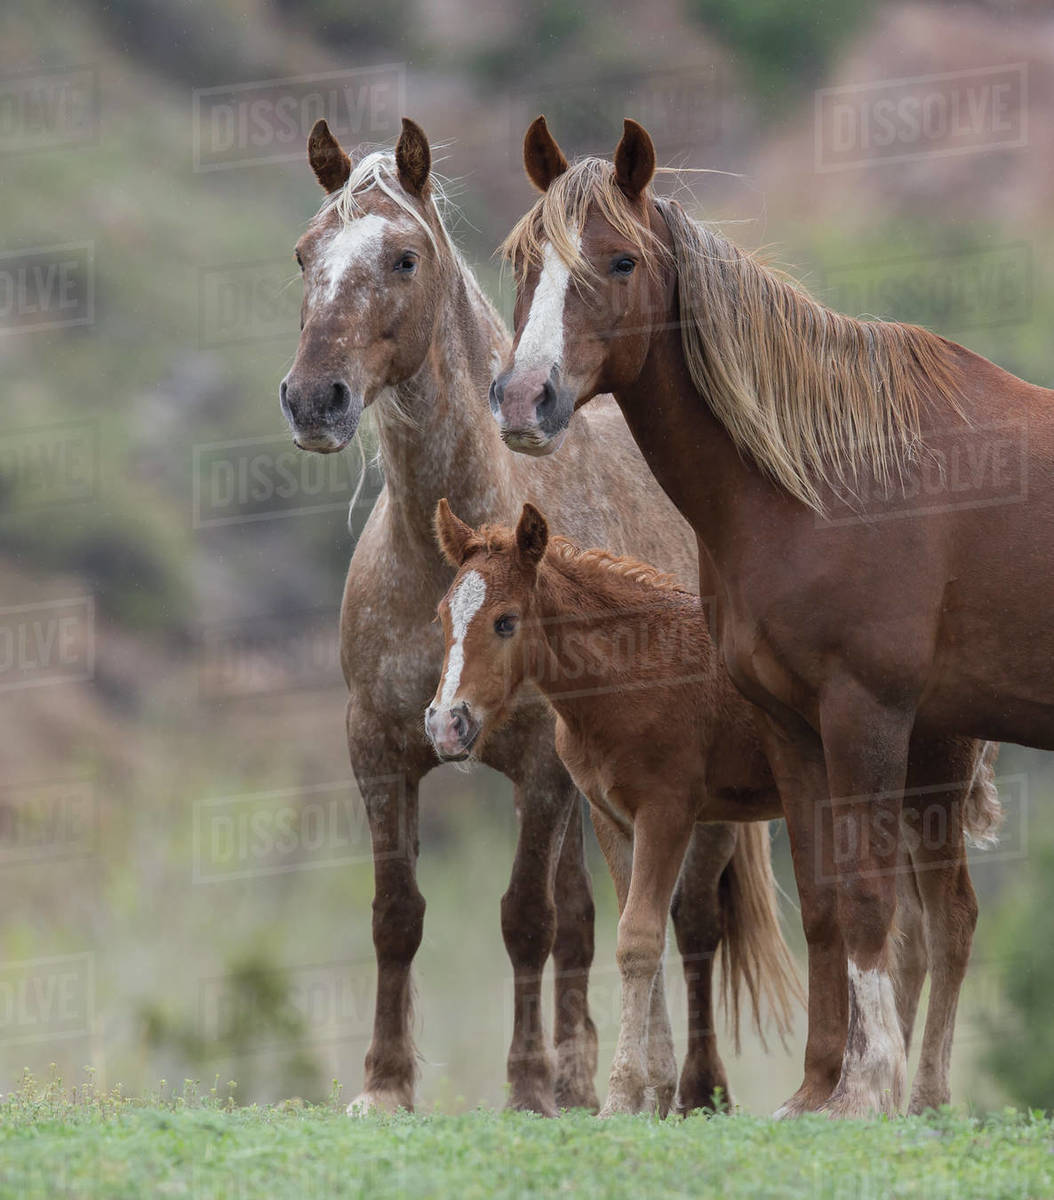 Rf Wild Mustang Mare With Sister And Foal At Black Hills Wild Horse Sanctuary South Dakota Usa May Stock Photo Dissolve